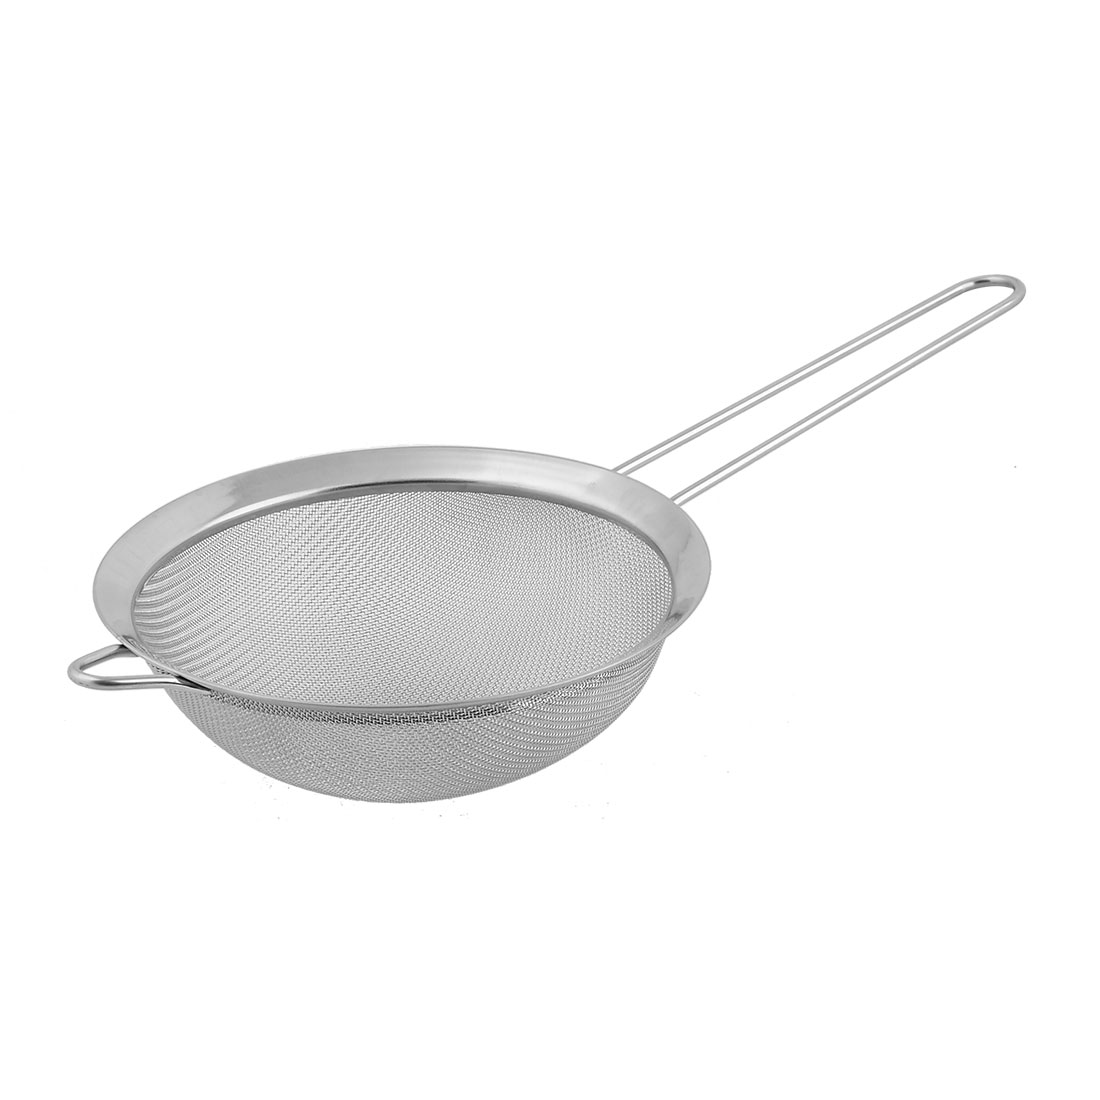 Click here to buy Unique BargainsKitchen Metal Food Noodle Flour Mesh Strainer Colander Sieve Sifter Silver Tone.